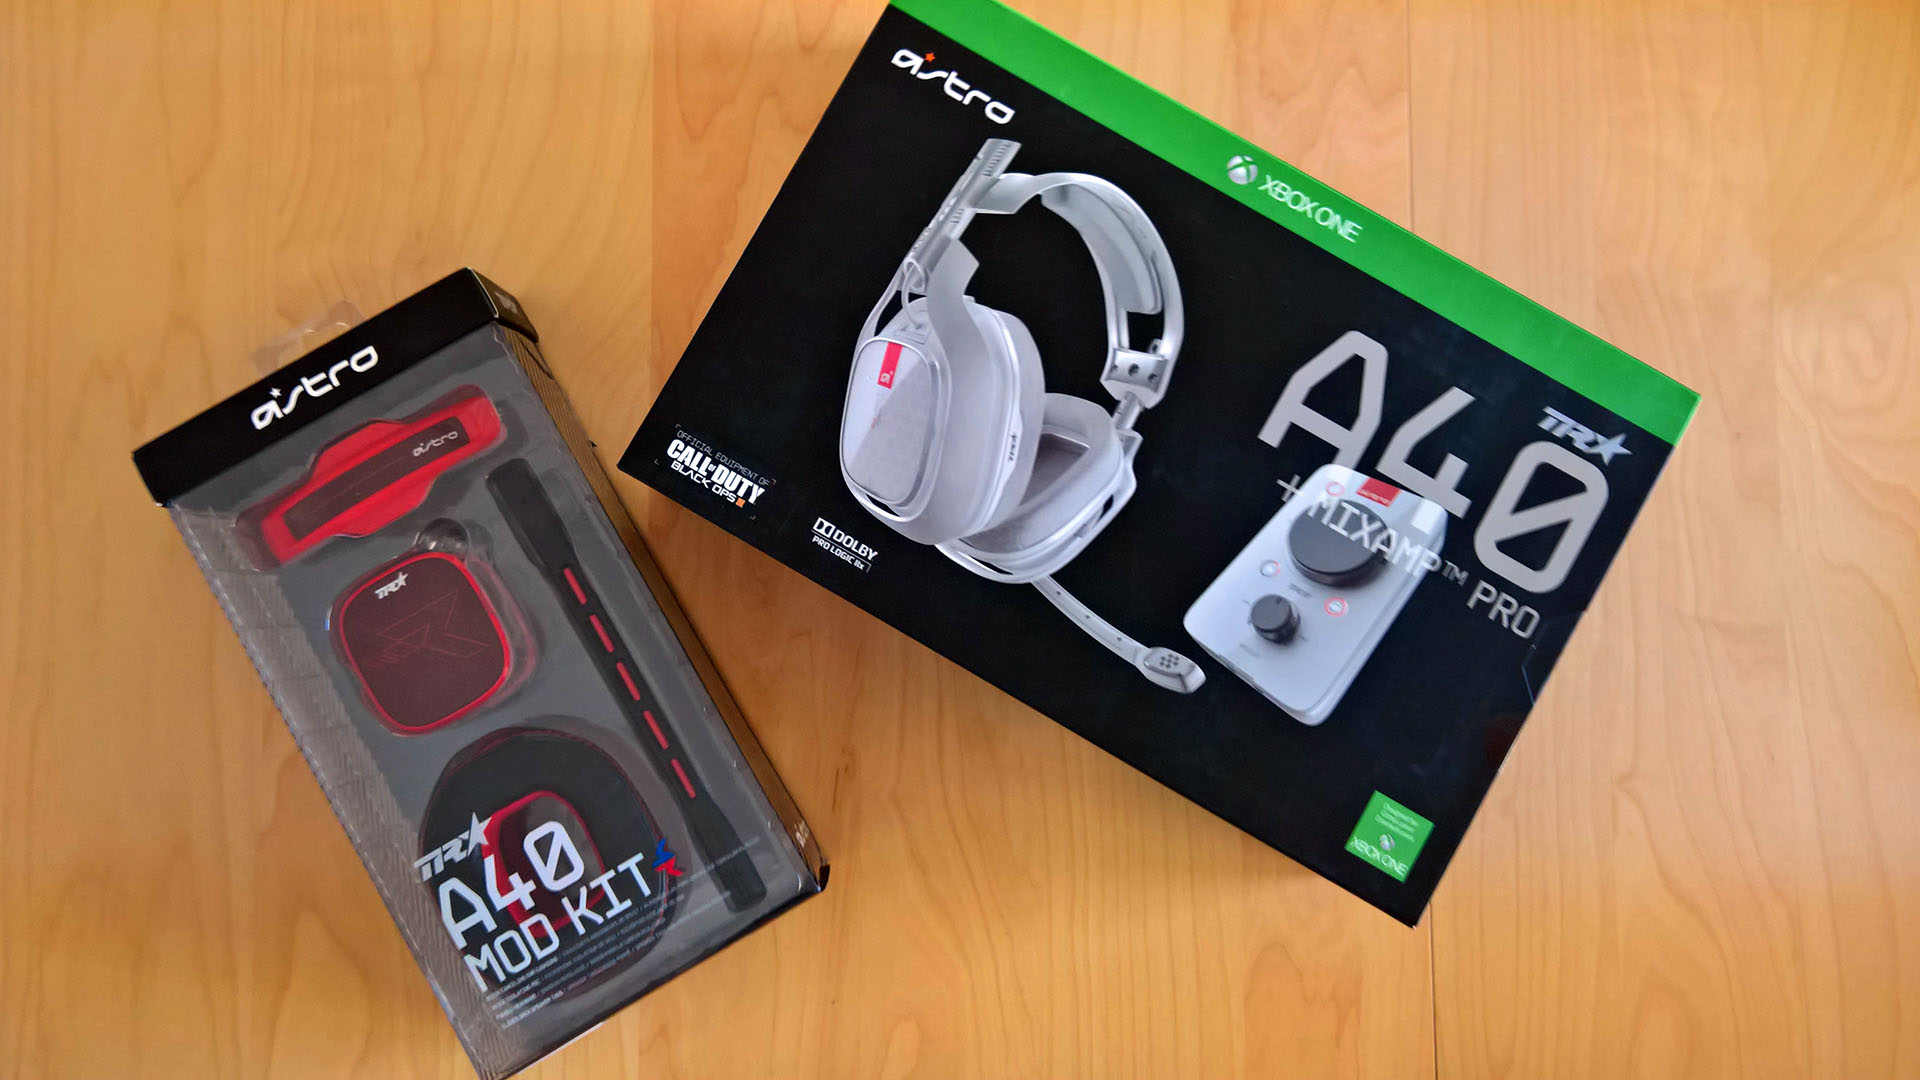 a40-tr-headset-mixamp-pro-tr-vgprofessional-review-16